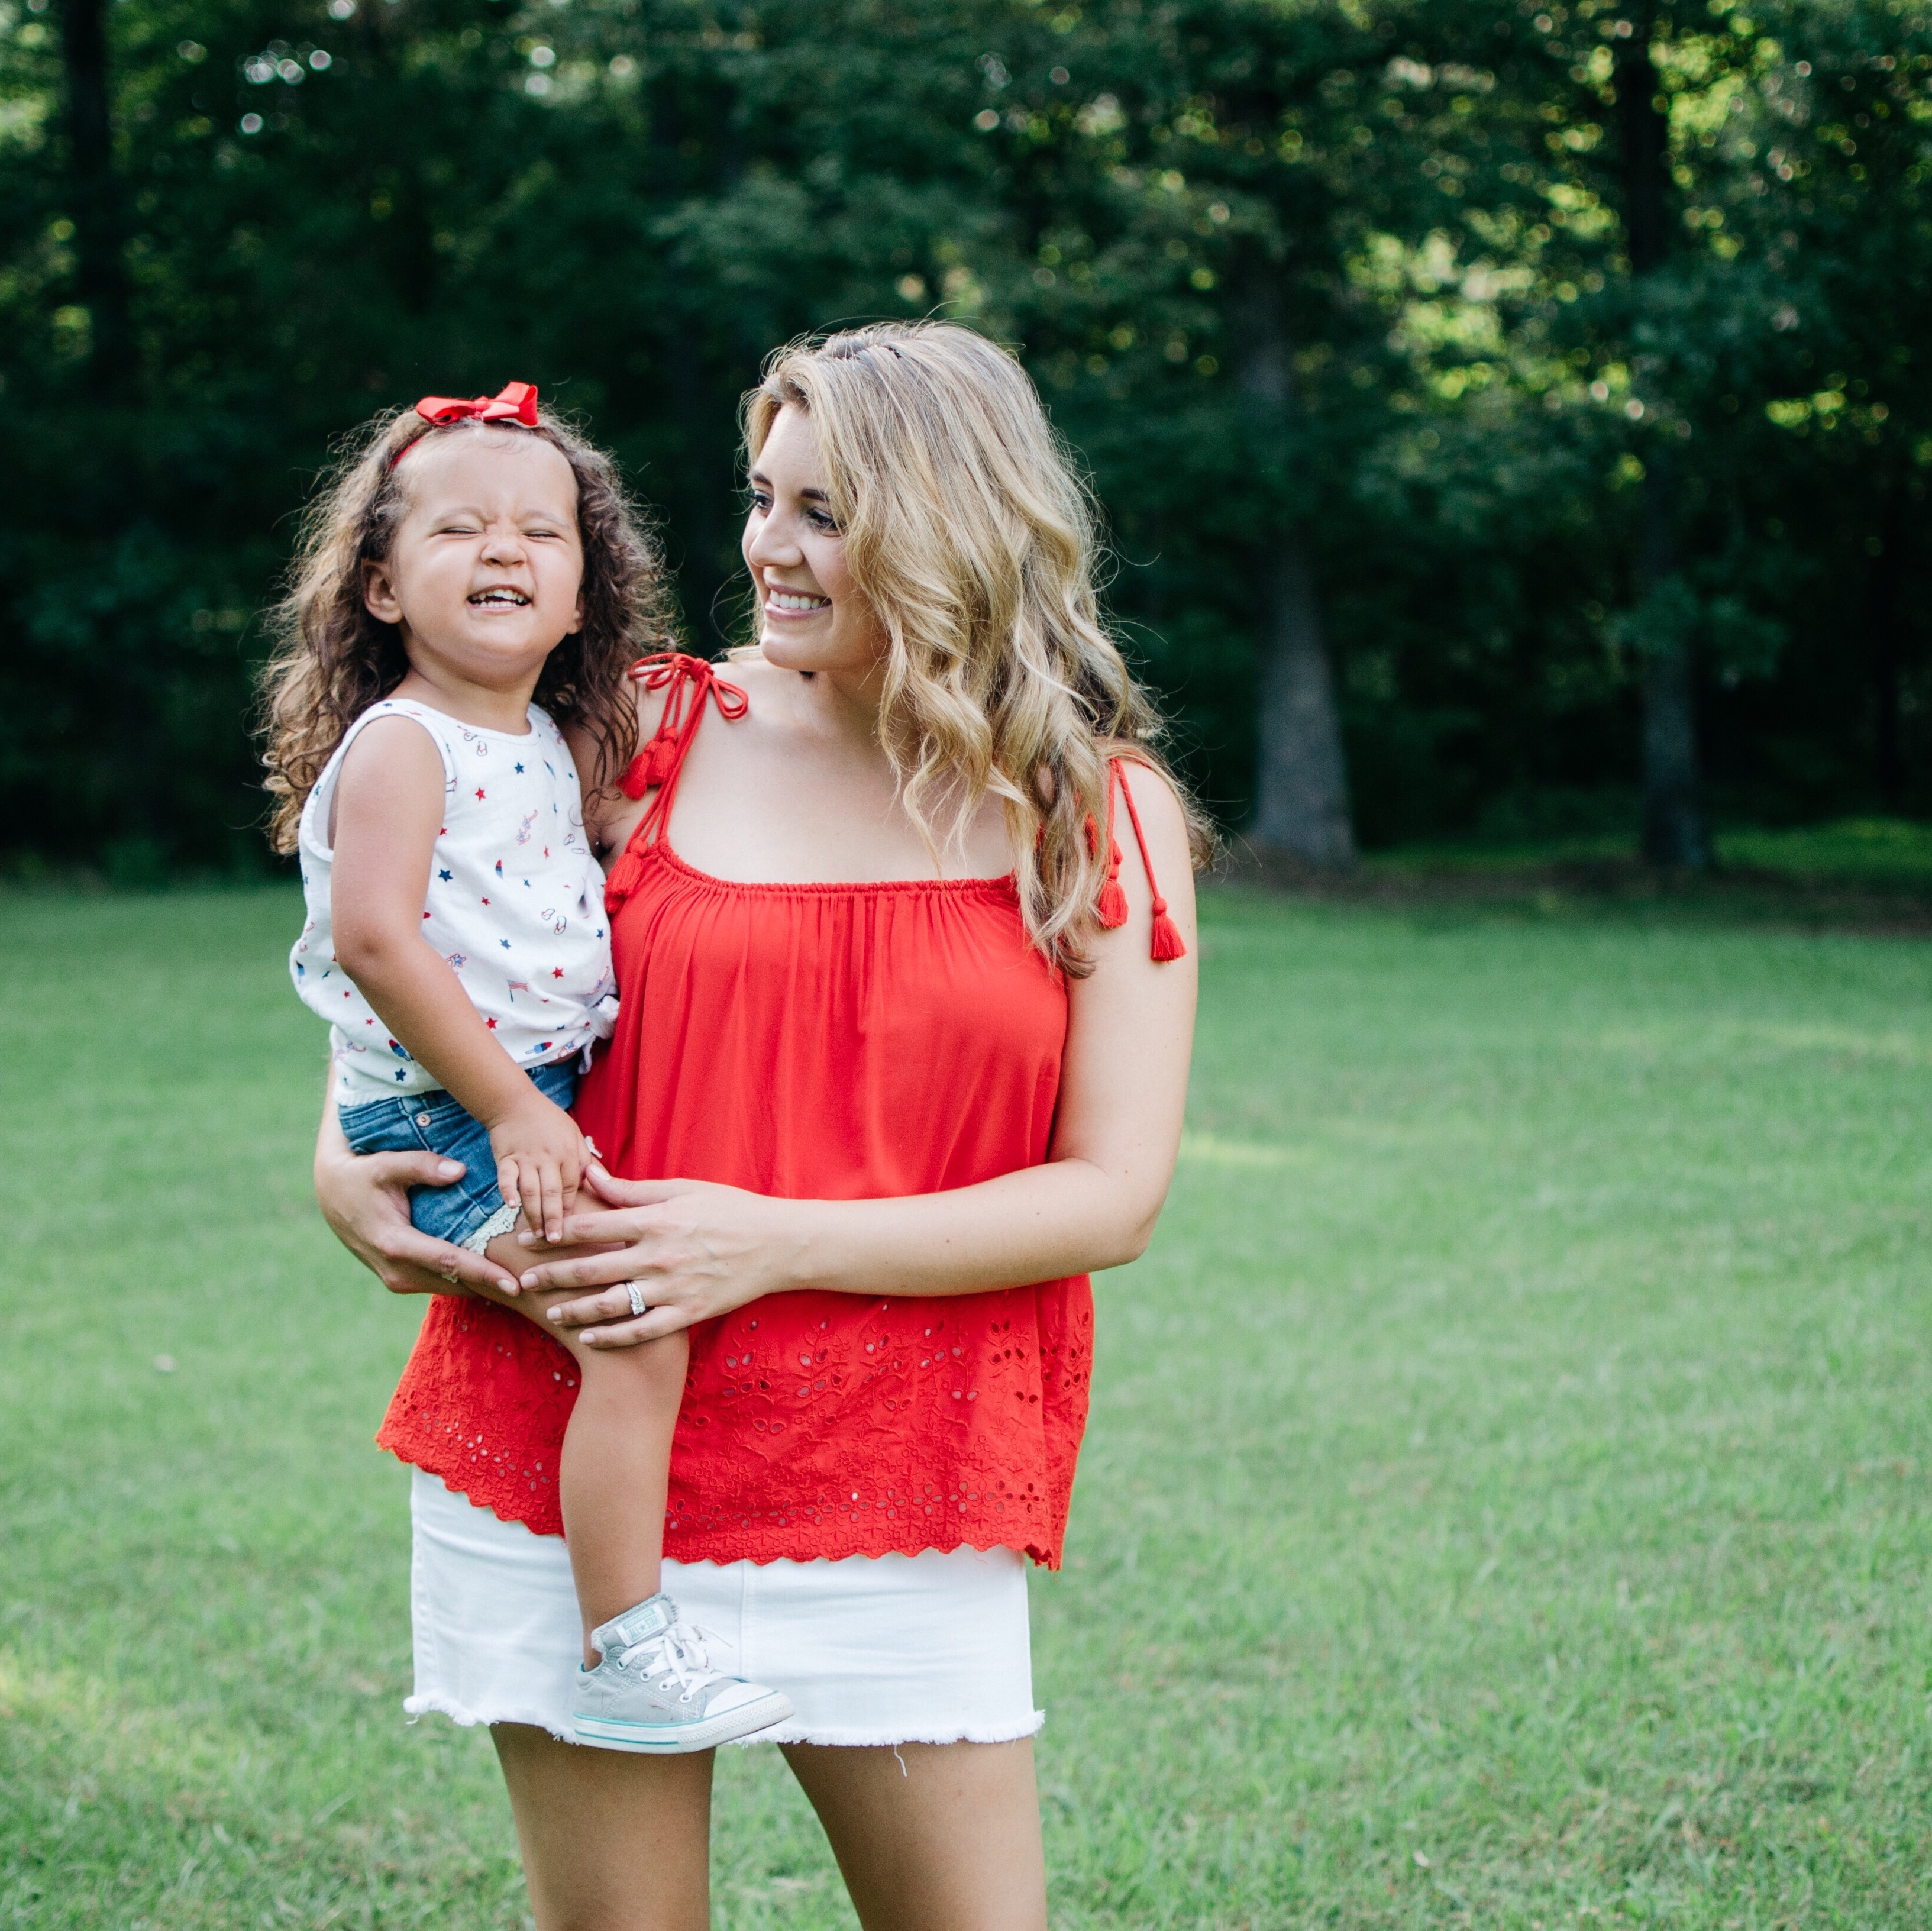 top instagram outfits for july | 4th of july mommy daughter style | bylaurenm.com